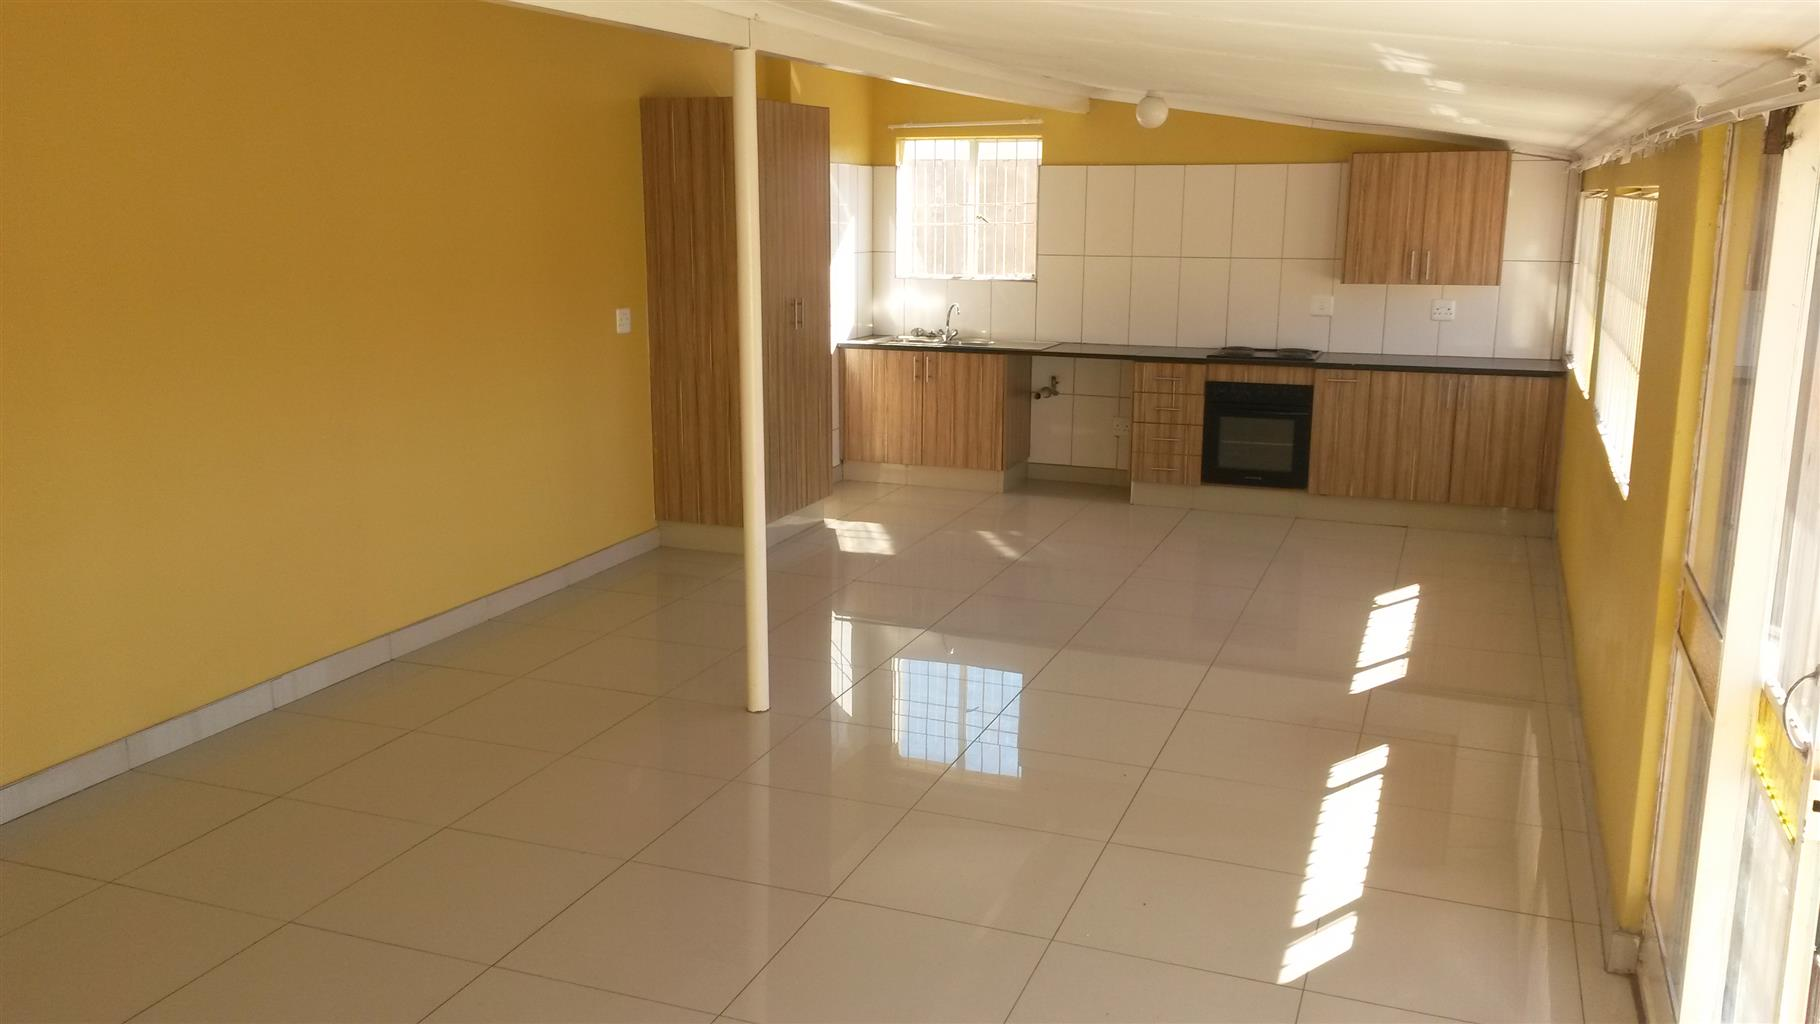 2 Bedroom Simplex to Rent in Pretoria North R5500 pm